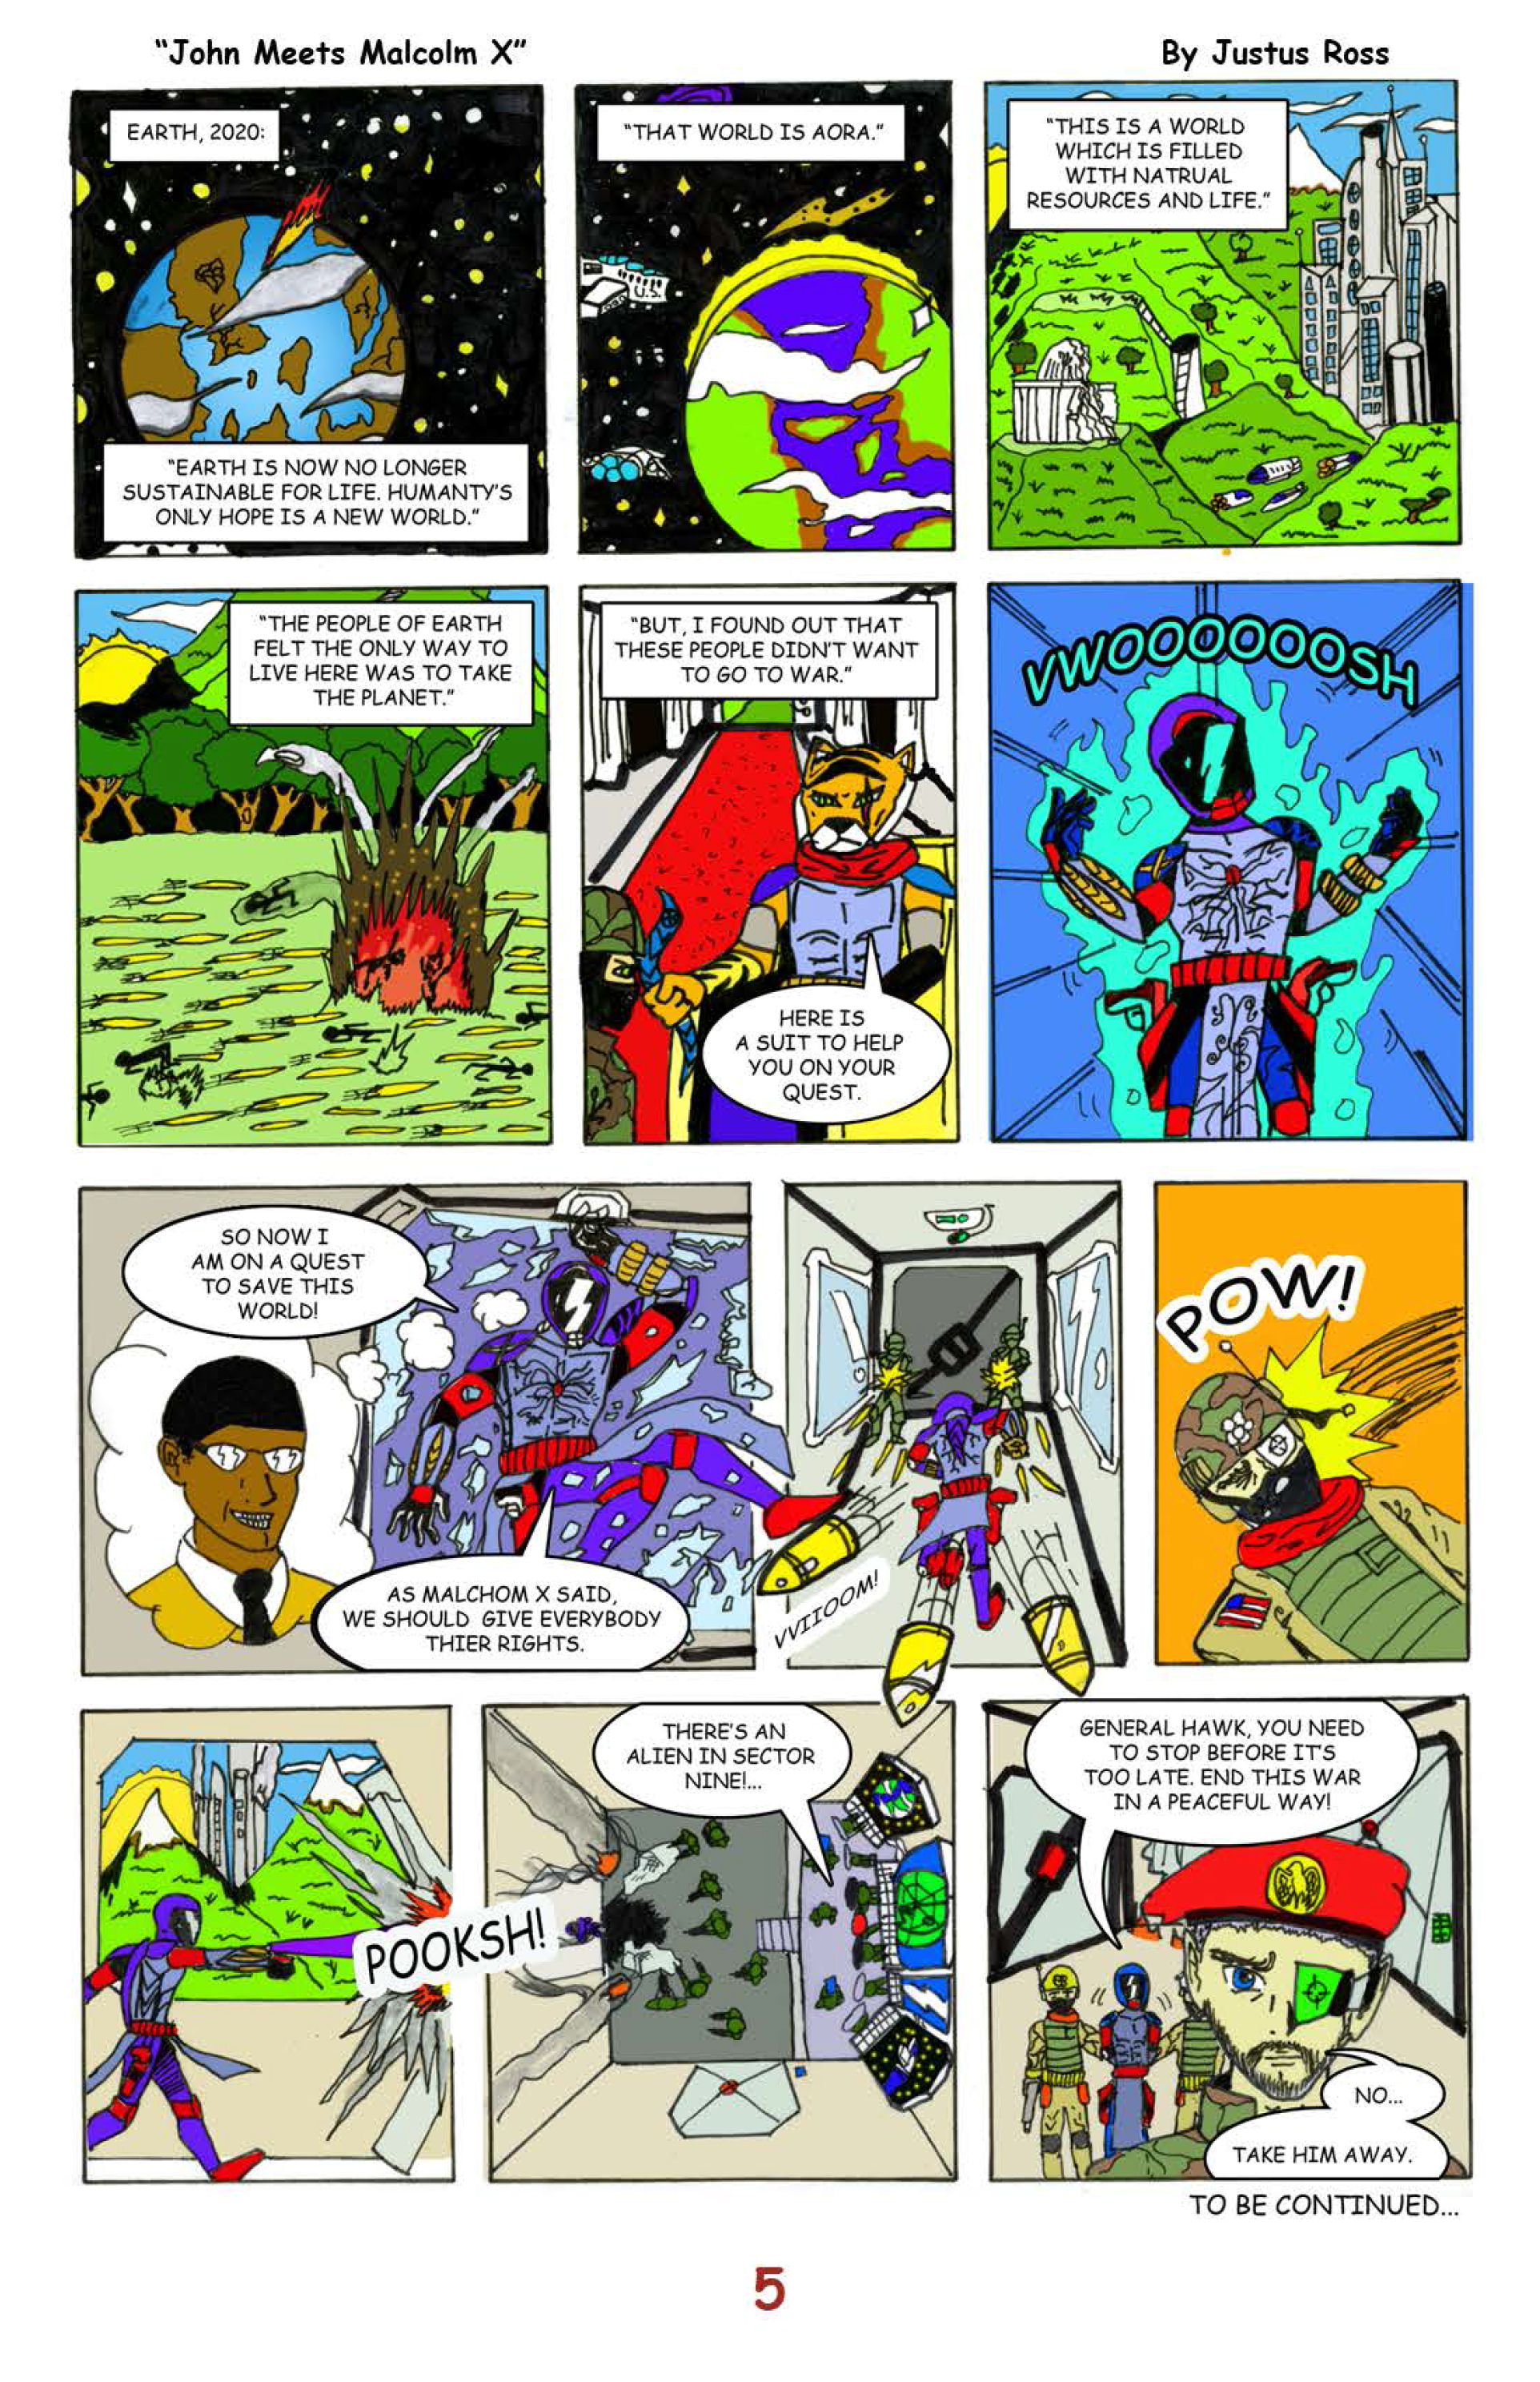 mth page 5.jpg